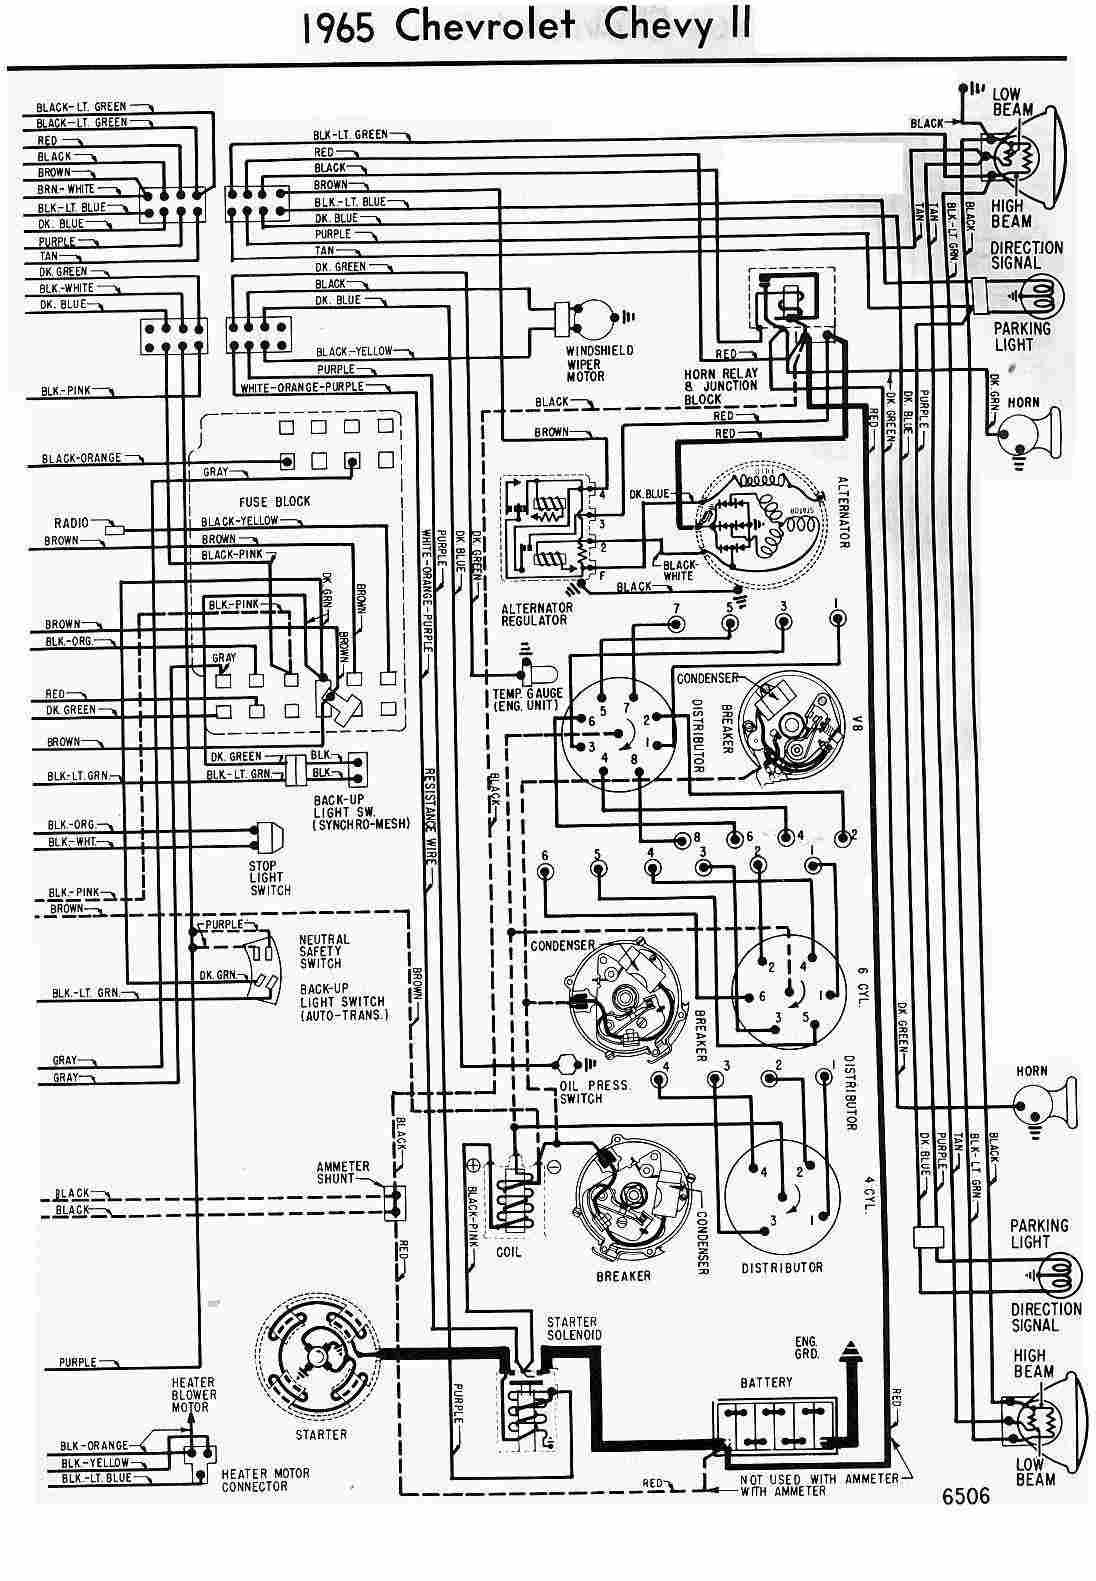 68 caprice wiring diagram best wiring library68 caprice wire diagram wiring  library rh 37 einheitmitte de